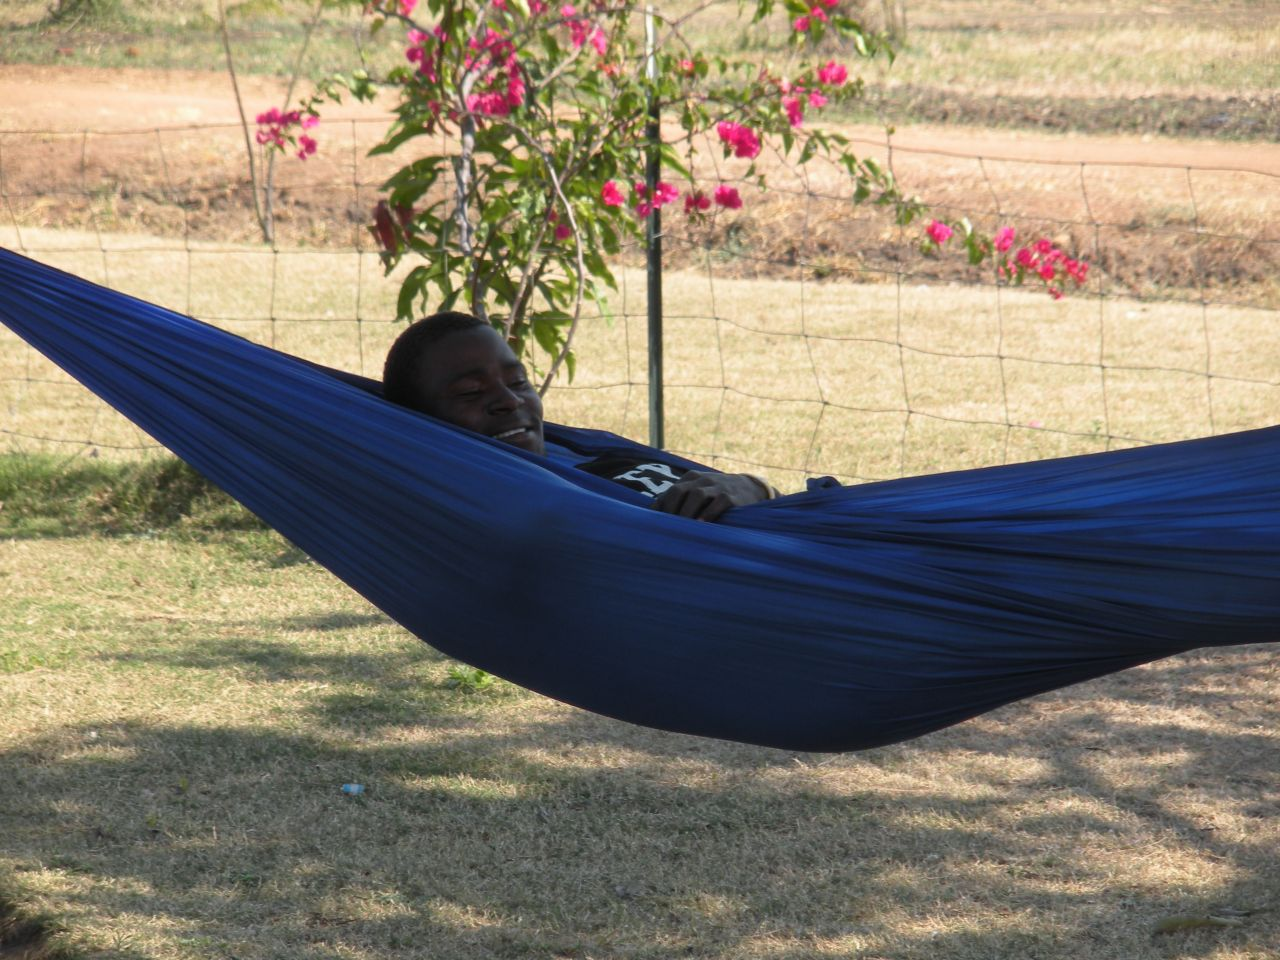 The Africans Like My Hammock.